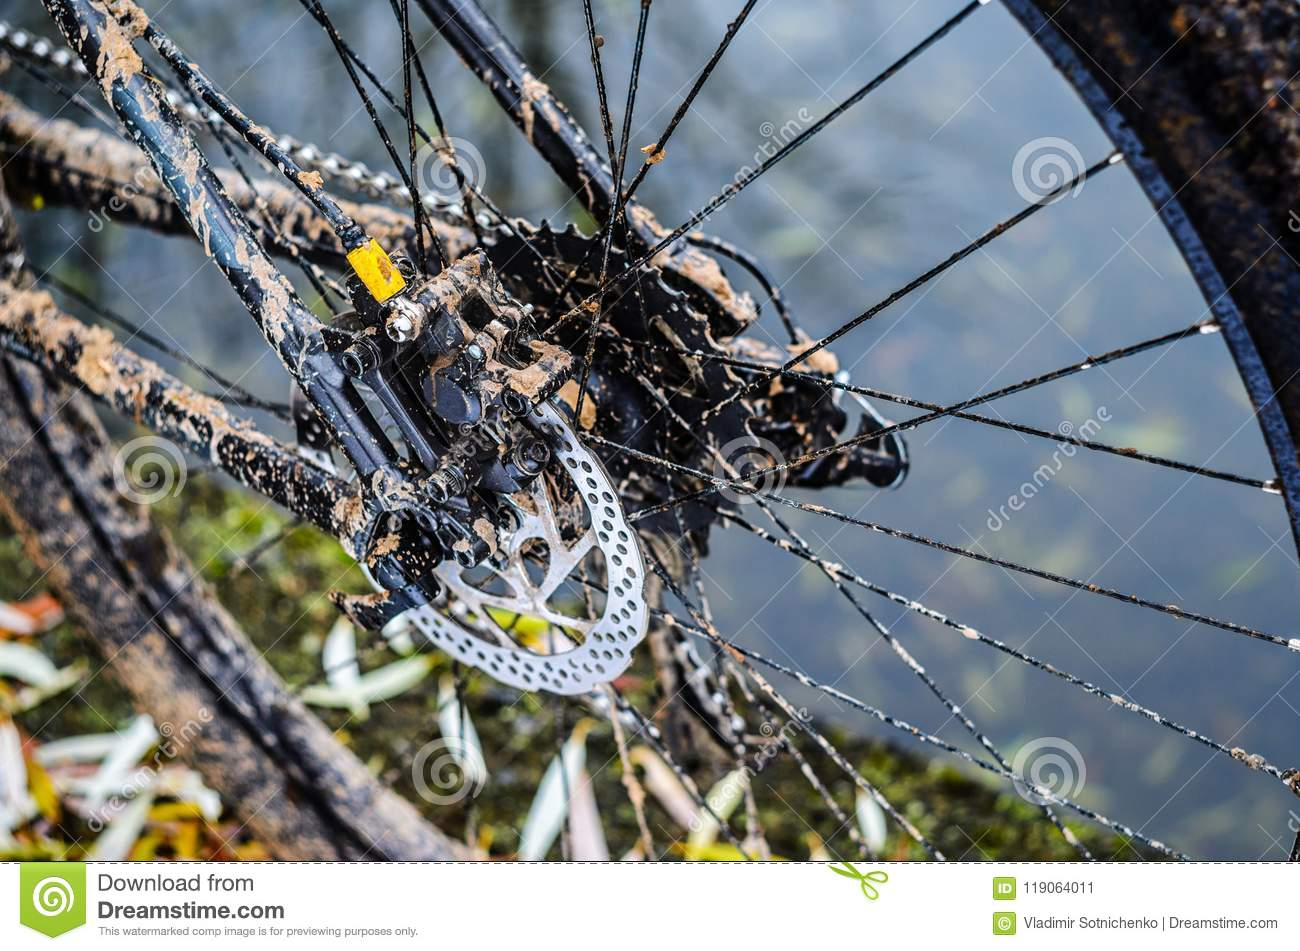 Mountain Bike Transmission In Mud Stock Image Image Of Rubber Pedal 119064011